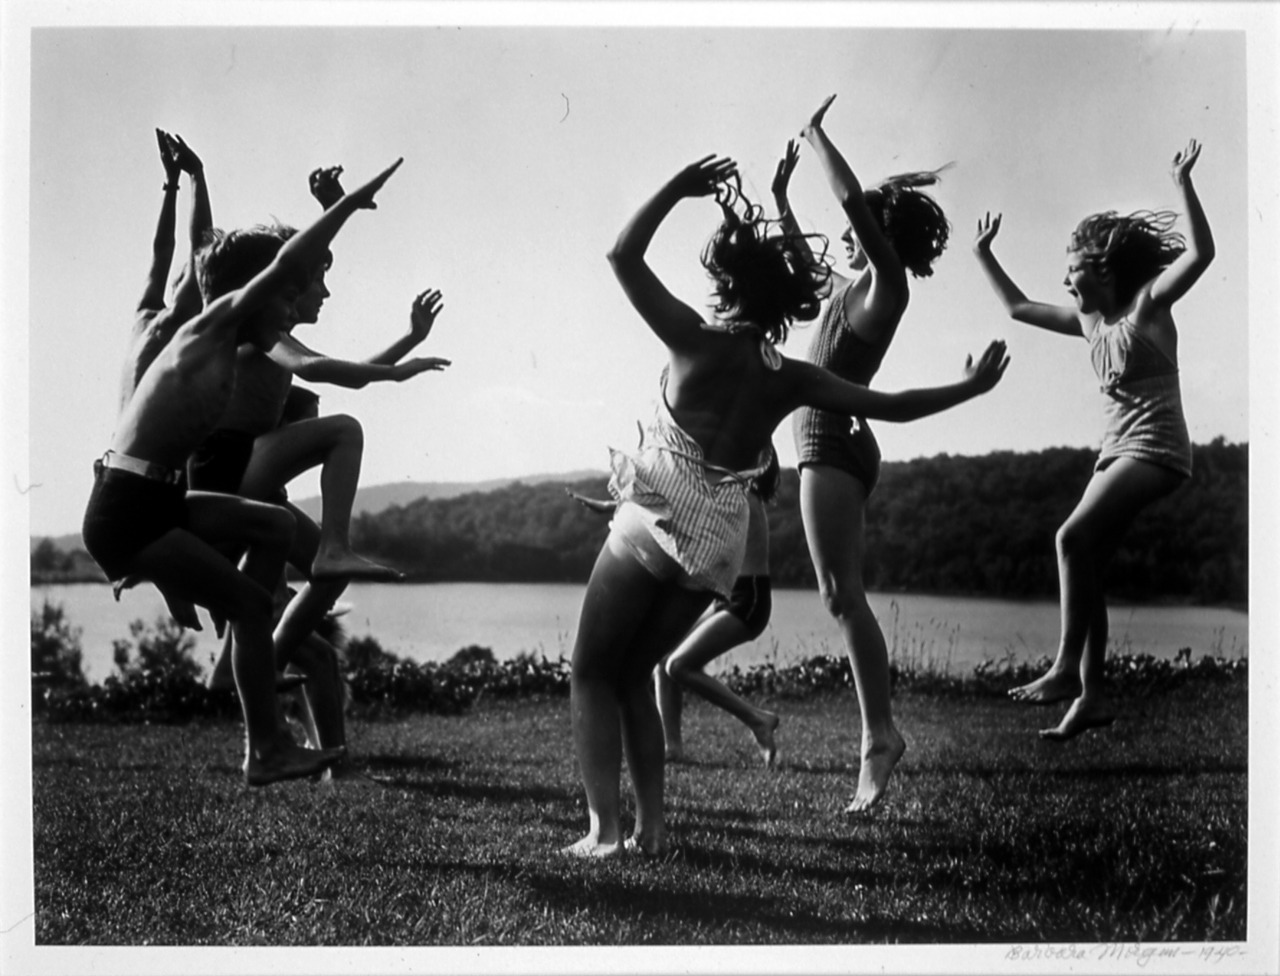 [+] firsttimeuser:  Children Dancing by the Lake, 1940 by Barbara Morgan